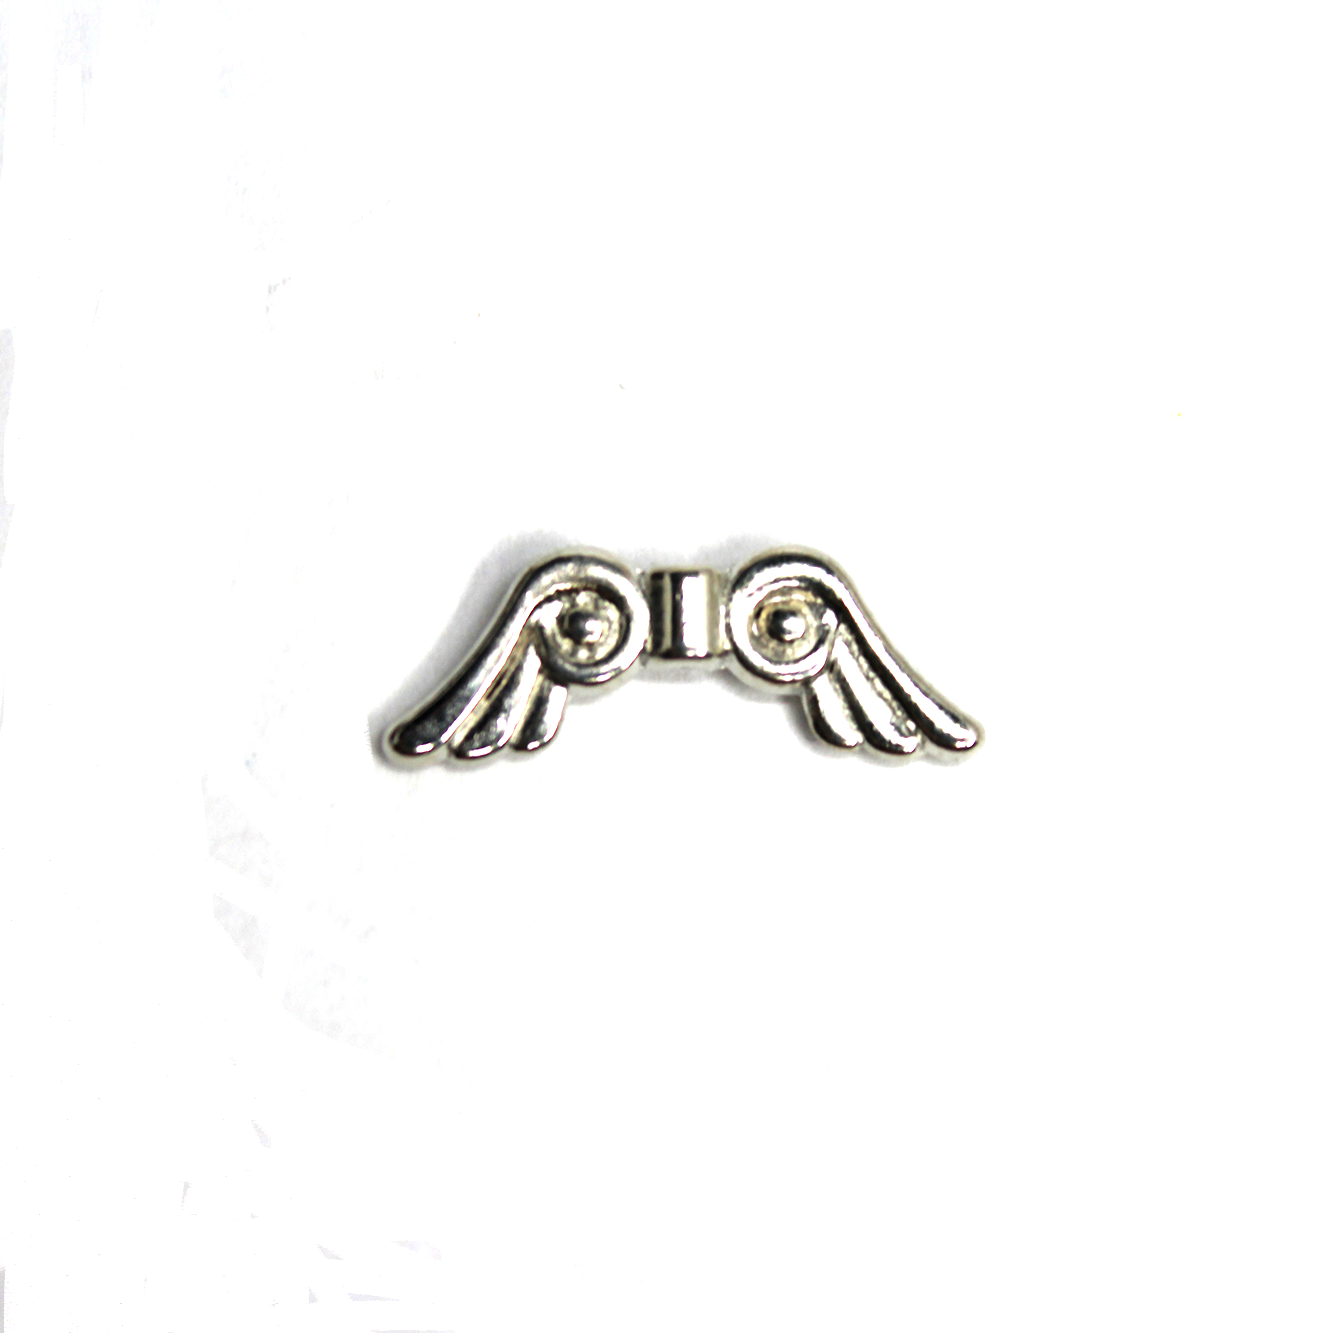 Spacers, Angel Wing Spacer, Alloy, 21mm X 8mm, Available in Bright Silver or Antique Silver, 10 pcs - Butterfly Beads